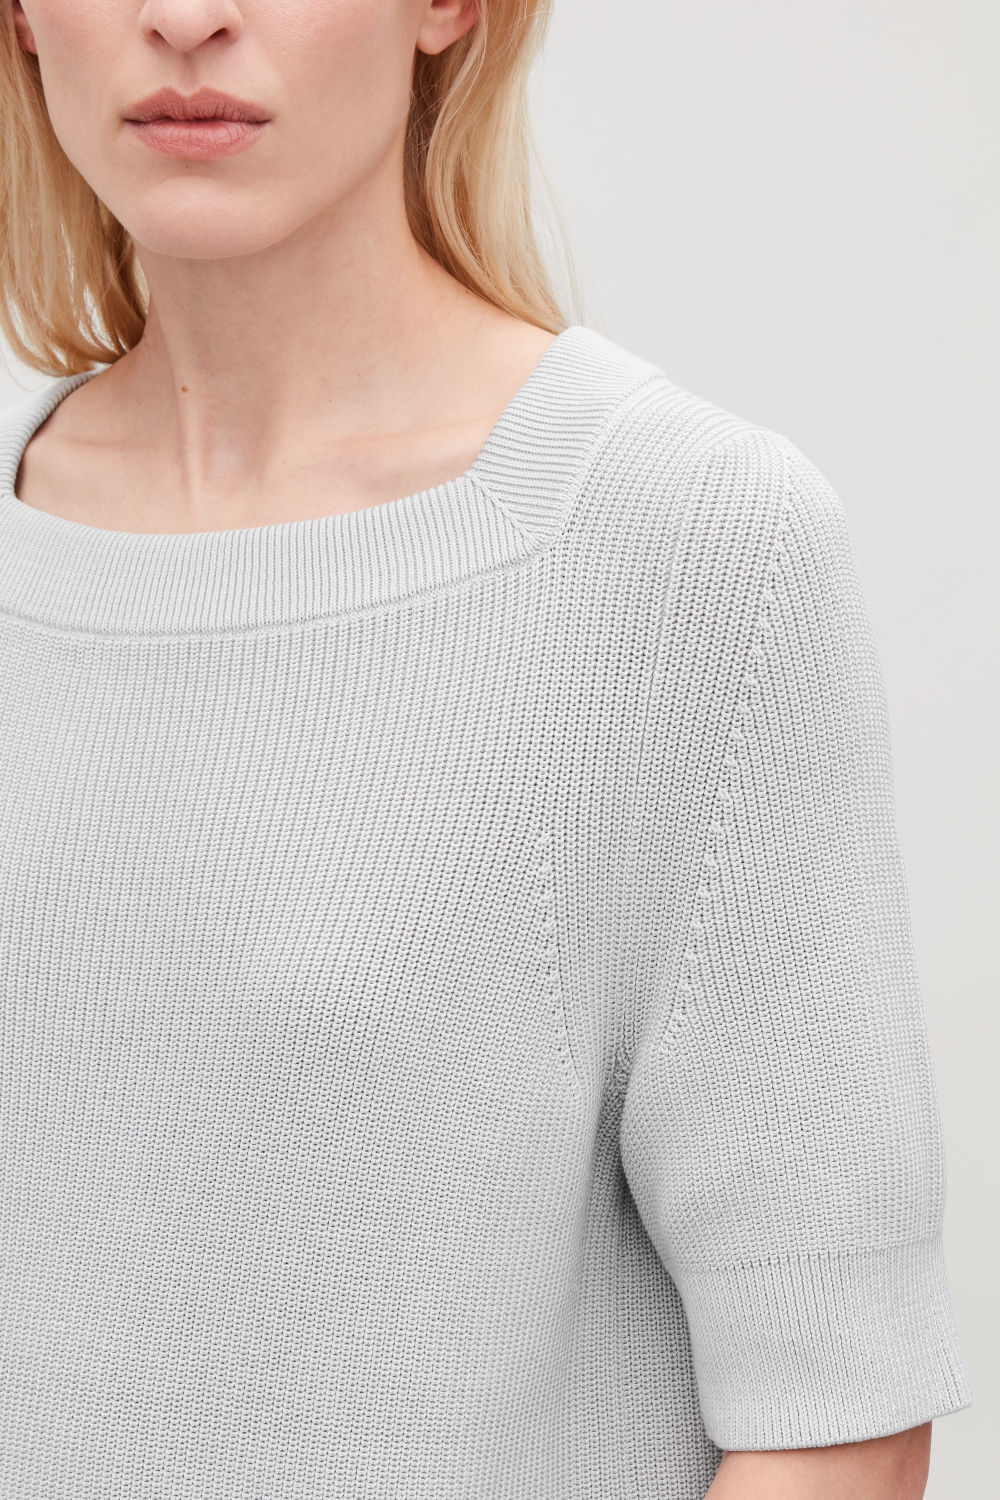 d3d436bcd0 SQUARE-NECK RIBBED KNIT TOP ...